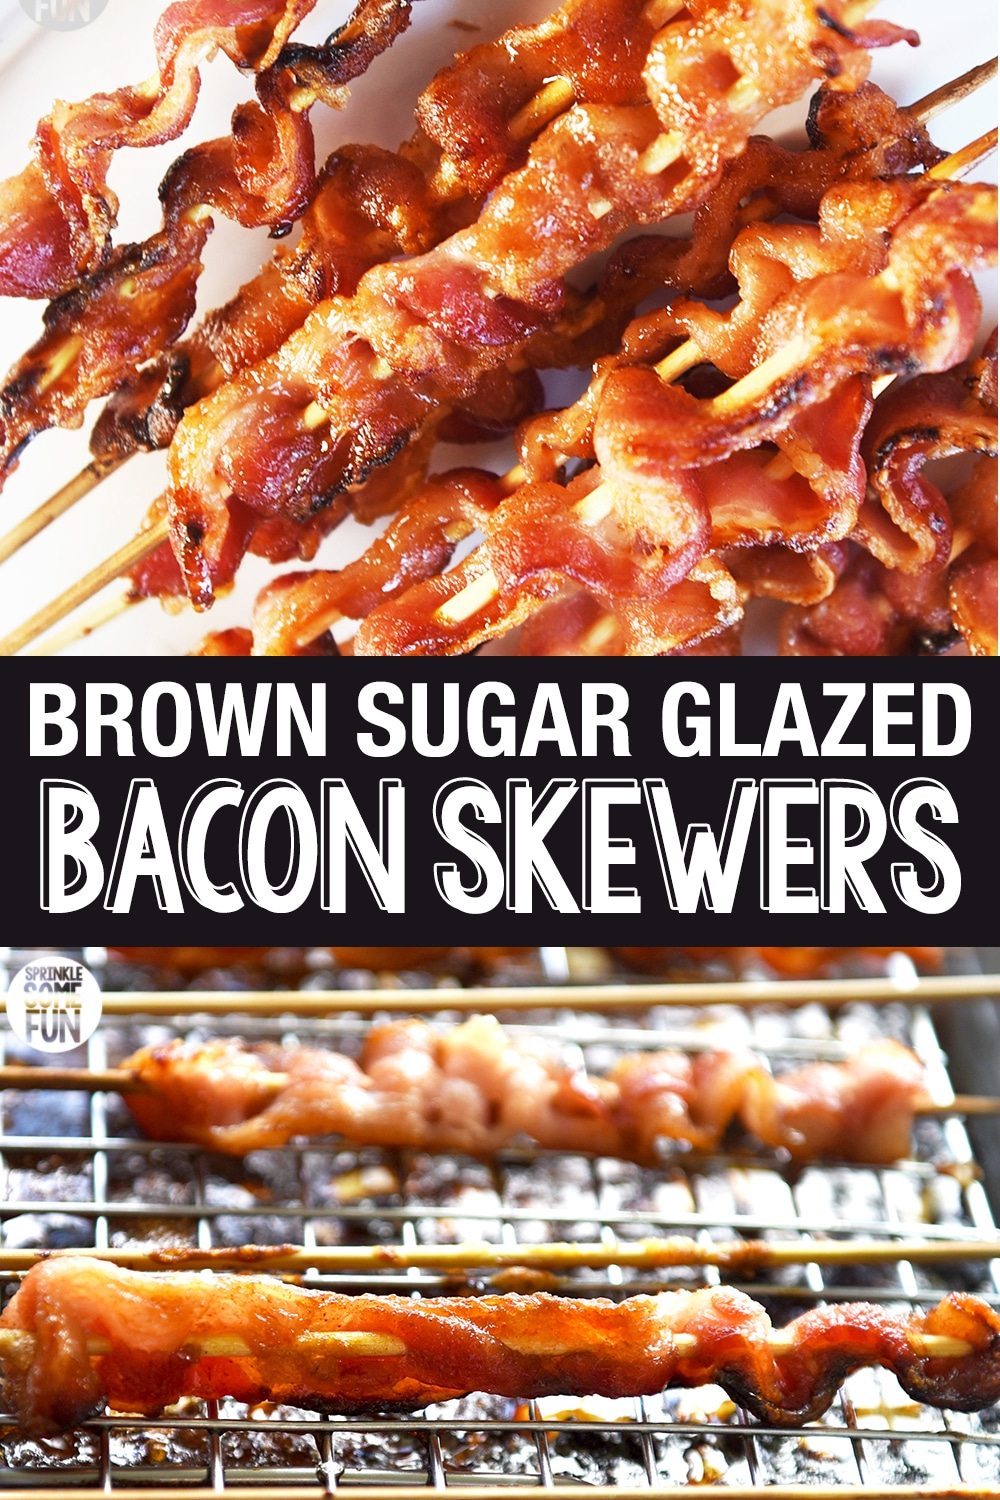 Bacon skewers are a tasty appetizer that is sure to please any bacon lover!   These are a great treat to make for holiday entertaining. Bacon skewers are perfect for serving at parties or at any meal where you want bacon (which is every meal, right?). #appetizer #baconskewer #holidayappetizer #easyappetizer #bacon #sweetbacon #baconcandy #brownsugarbacon #christmasappetizer #fallappetizer #brownsugarbaconskewer #brunch #brunchrecipe #baconrecipe #recipeswithbacon #recipe